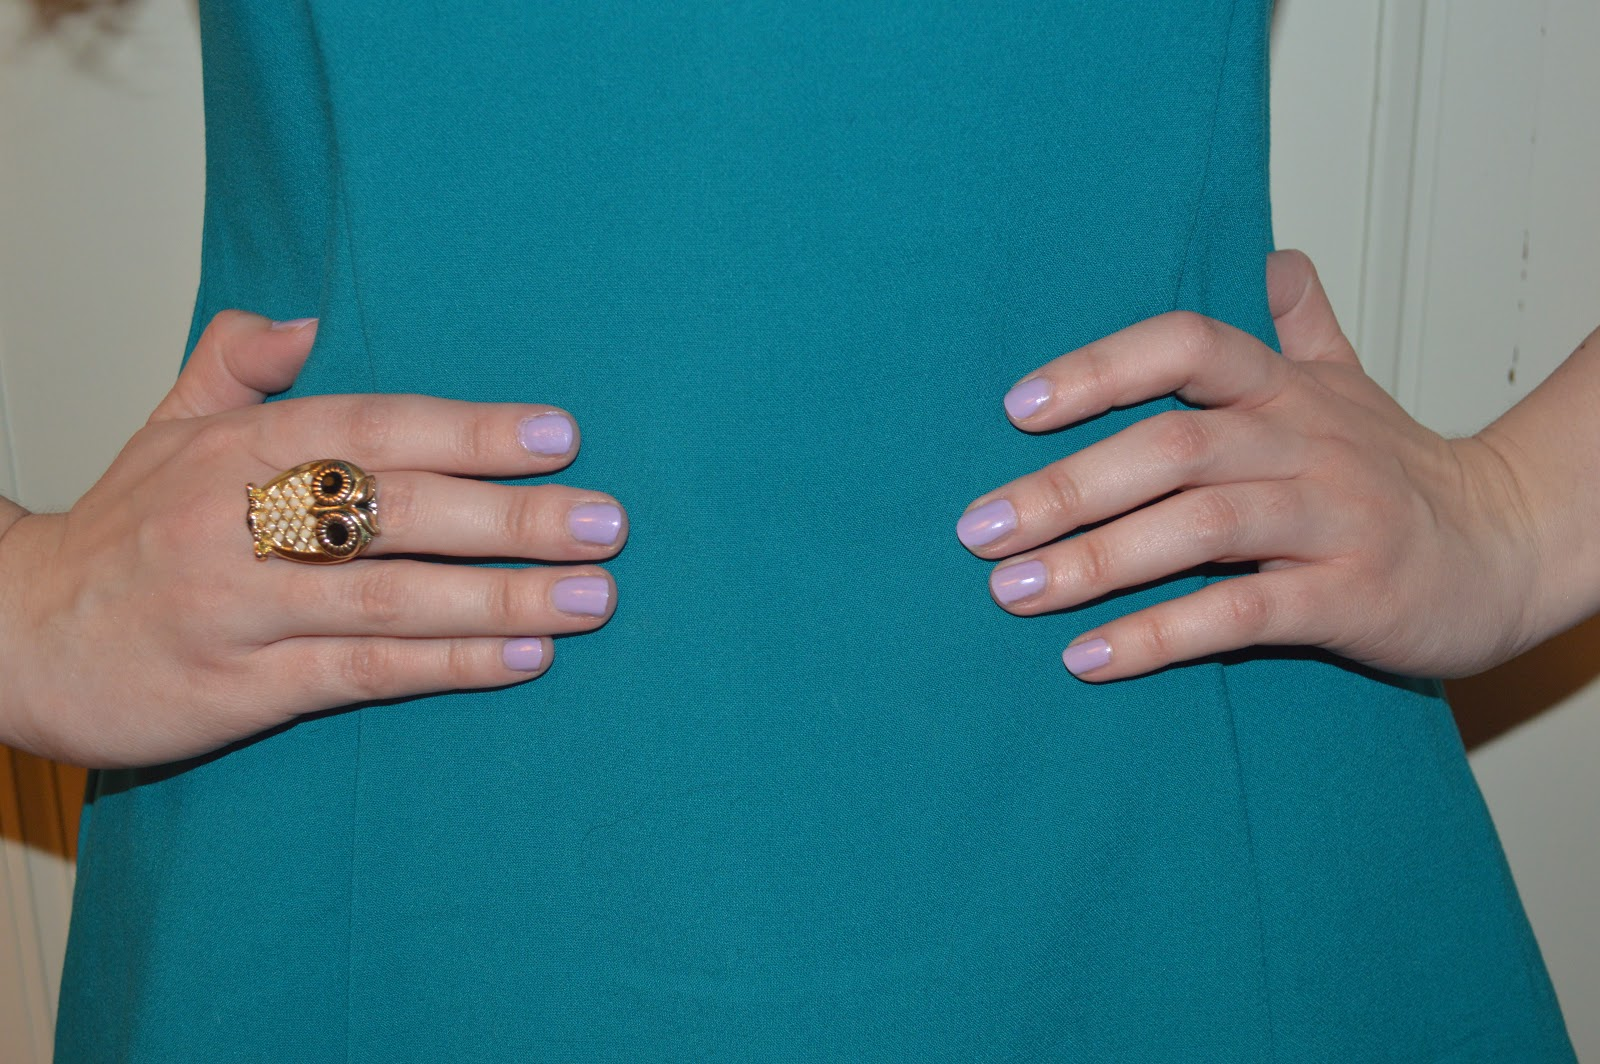 Forum on this topic: Elegant Emerald Green Nails Designs For You, elegant-emerald-green-nails-designs-for-you/